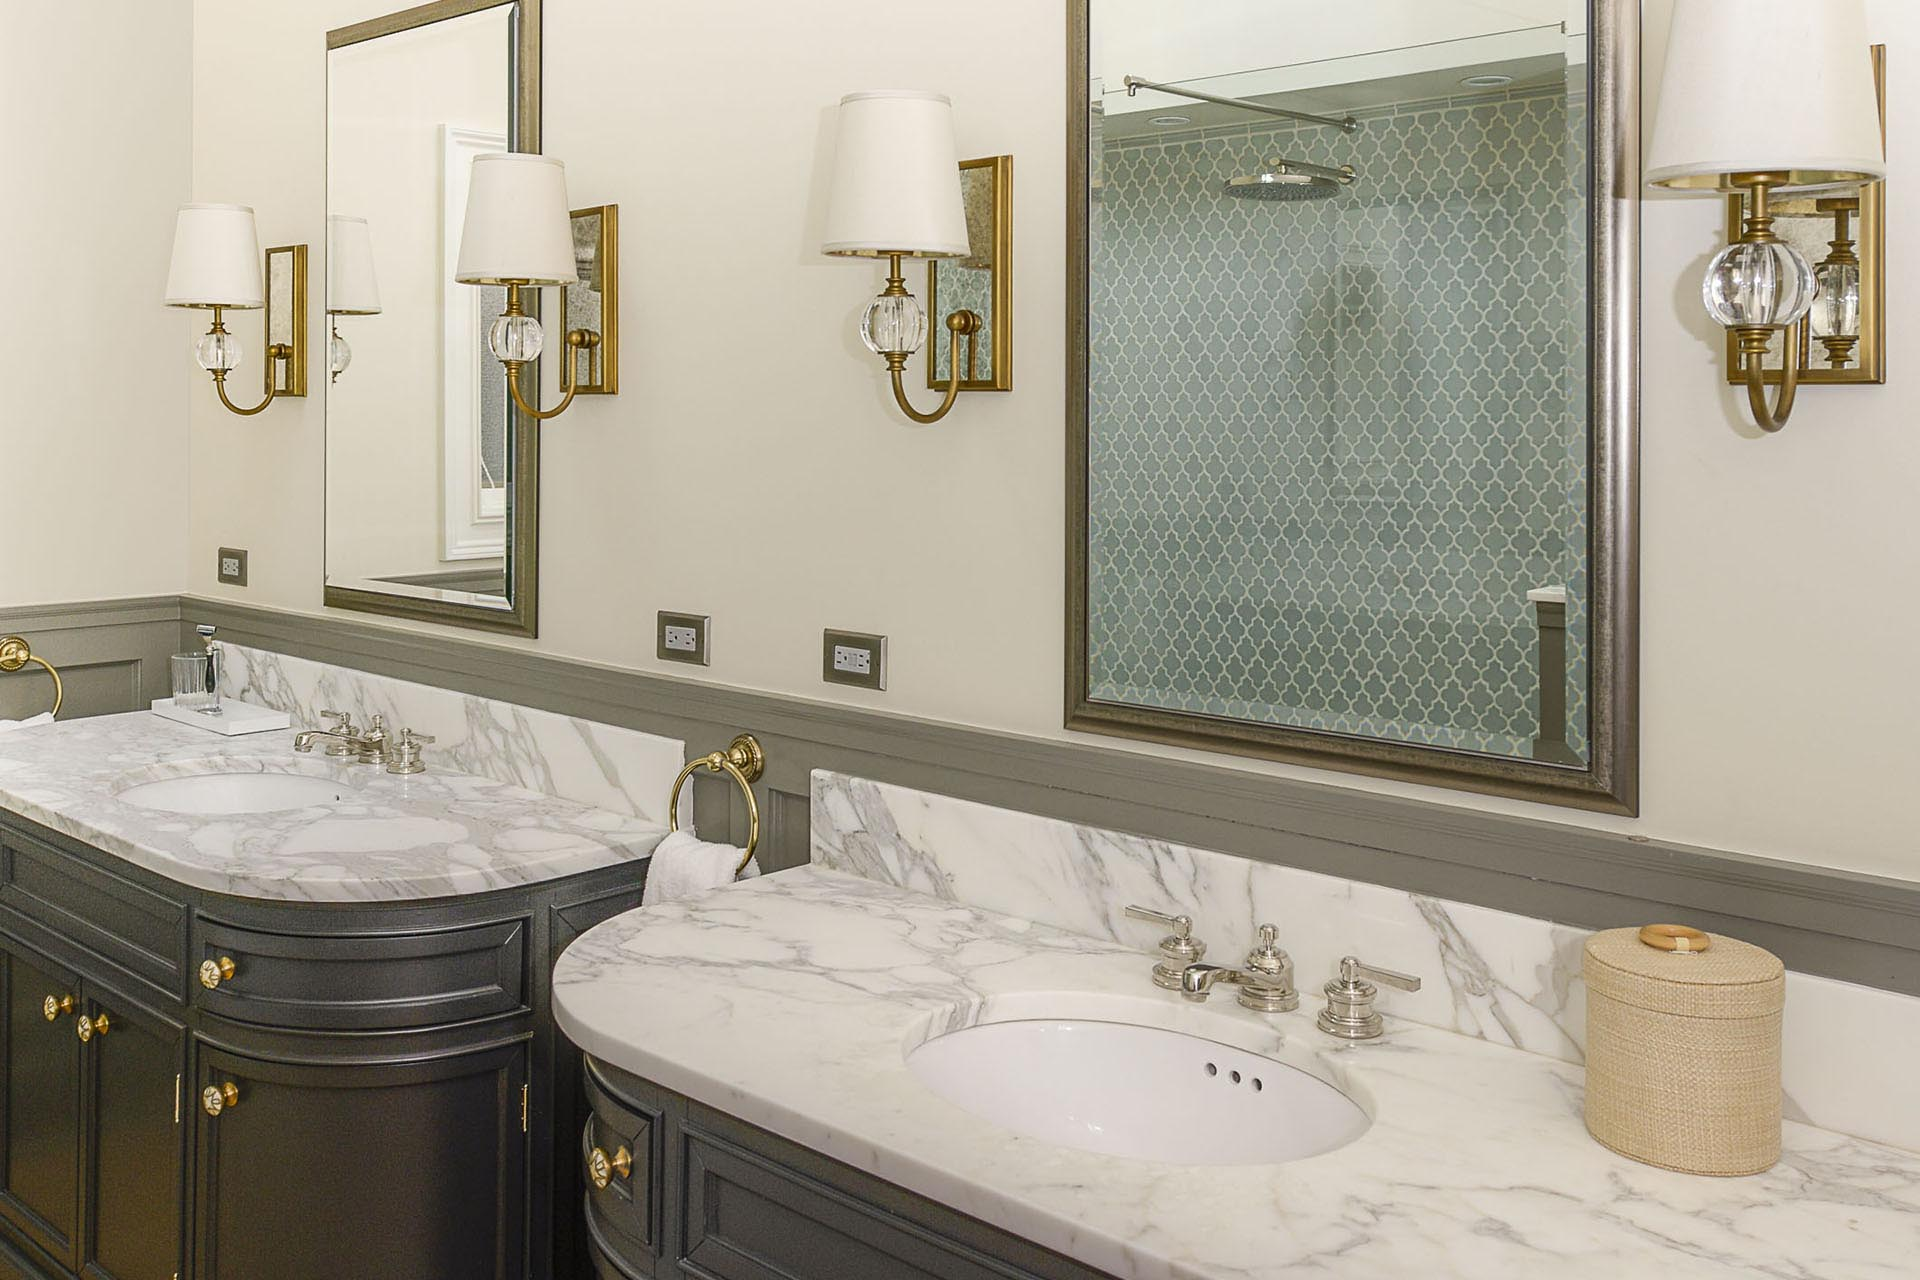 Chicago Hermitage Home Design Remodeling Gallery - Bathroom remodeling northbrook